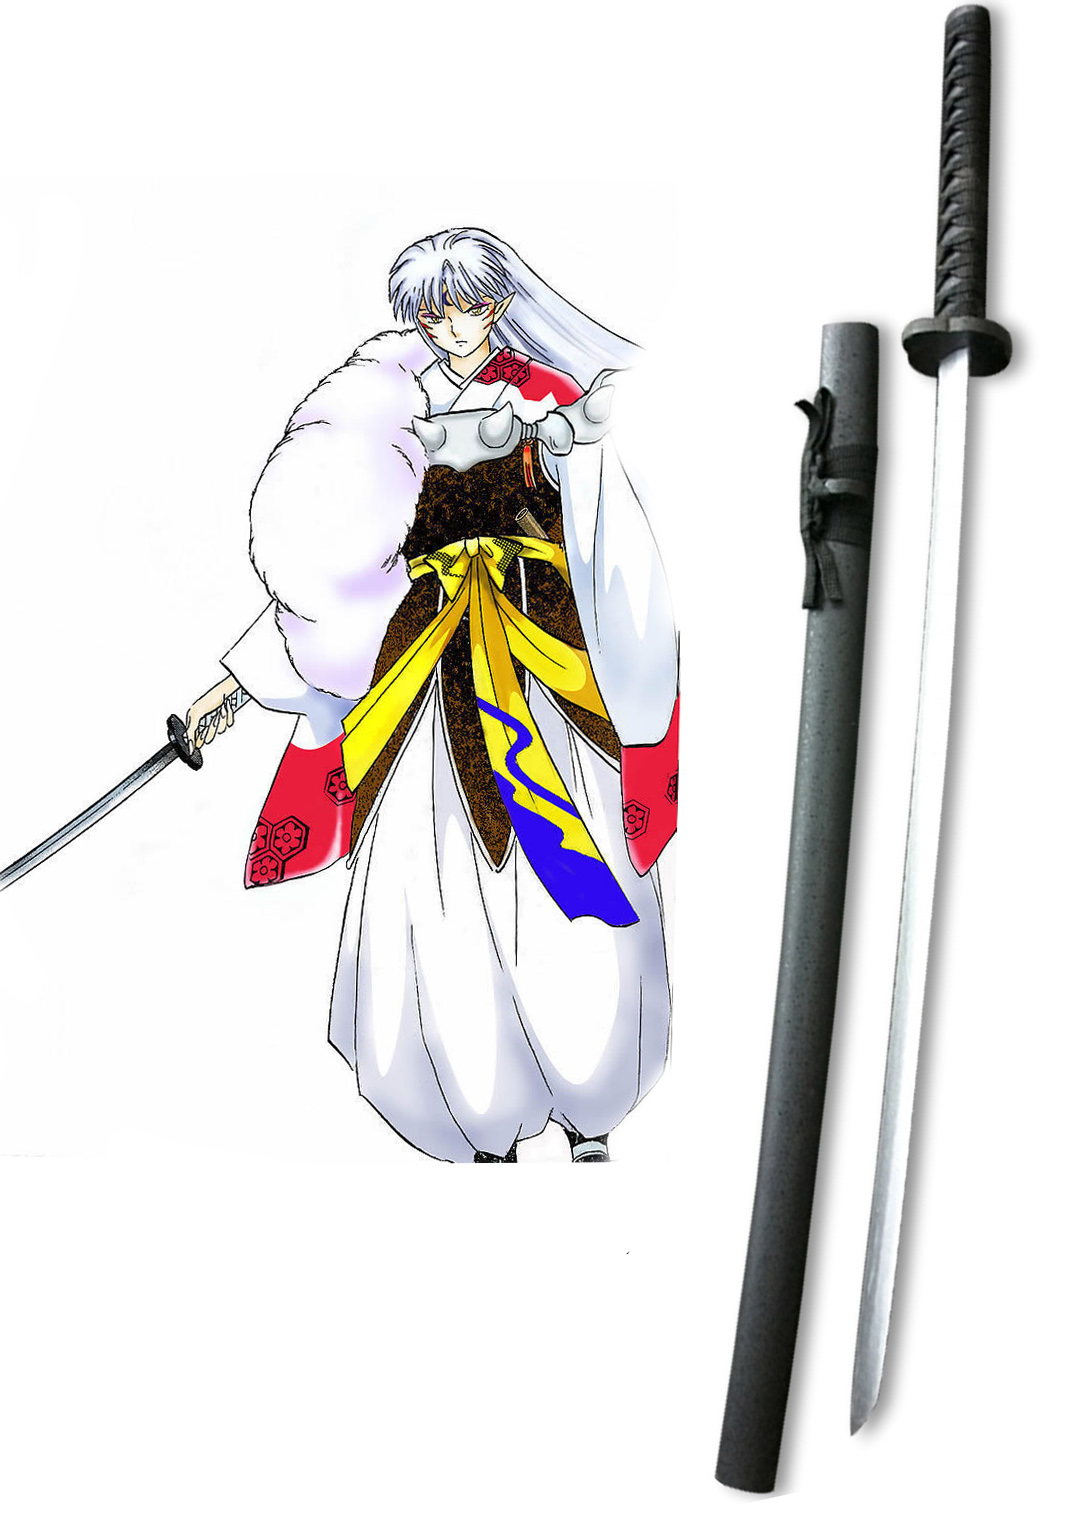 Inuyasha Sesshomaru Tenseiga Cosplay Wooden Weapons